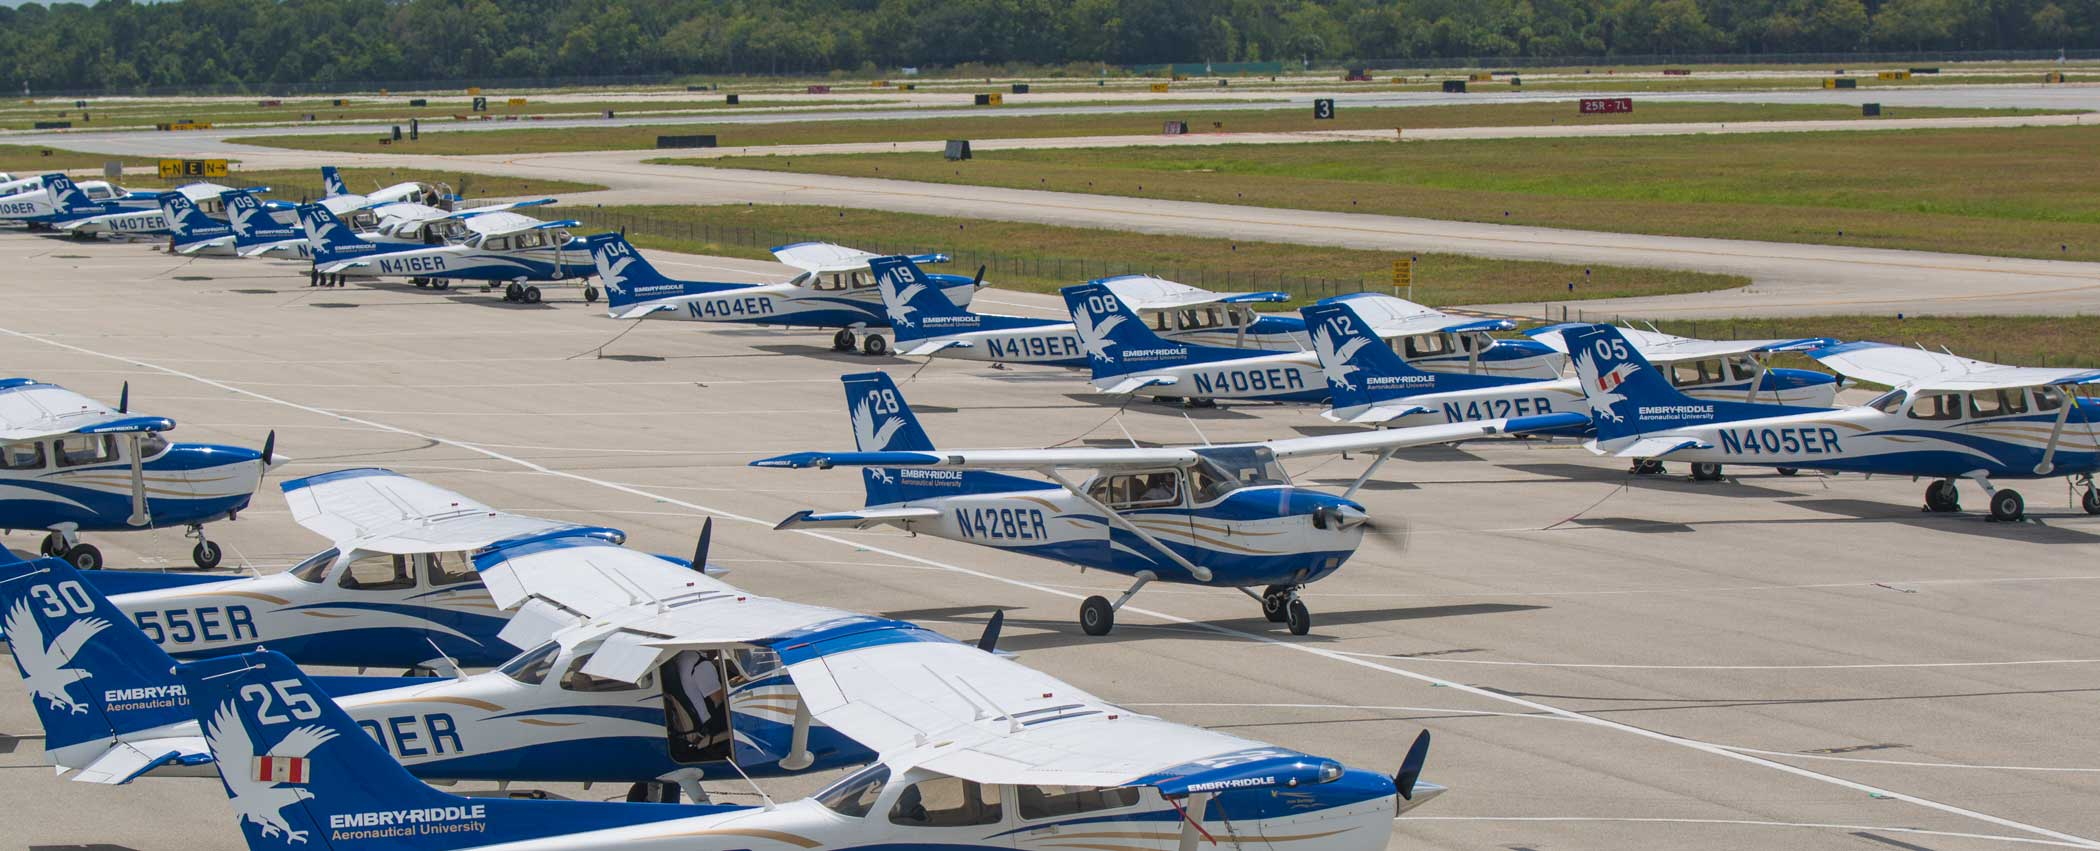 Embry-Riddle's Aeronautical Science bachelor degree programs (Fixed and Rotary) offer the most advanced flight training curriculum in the world for pilots.